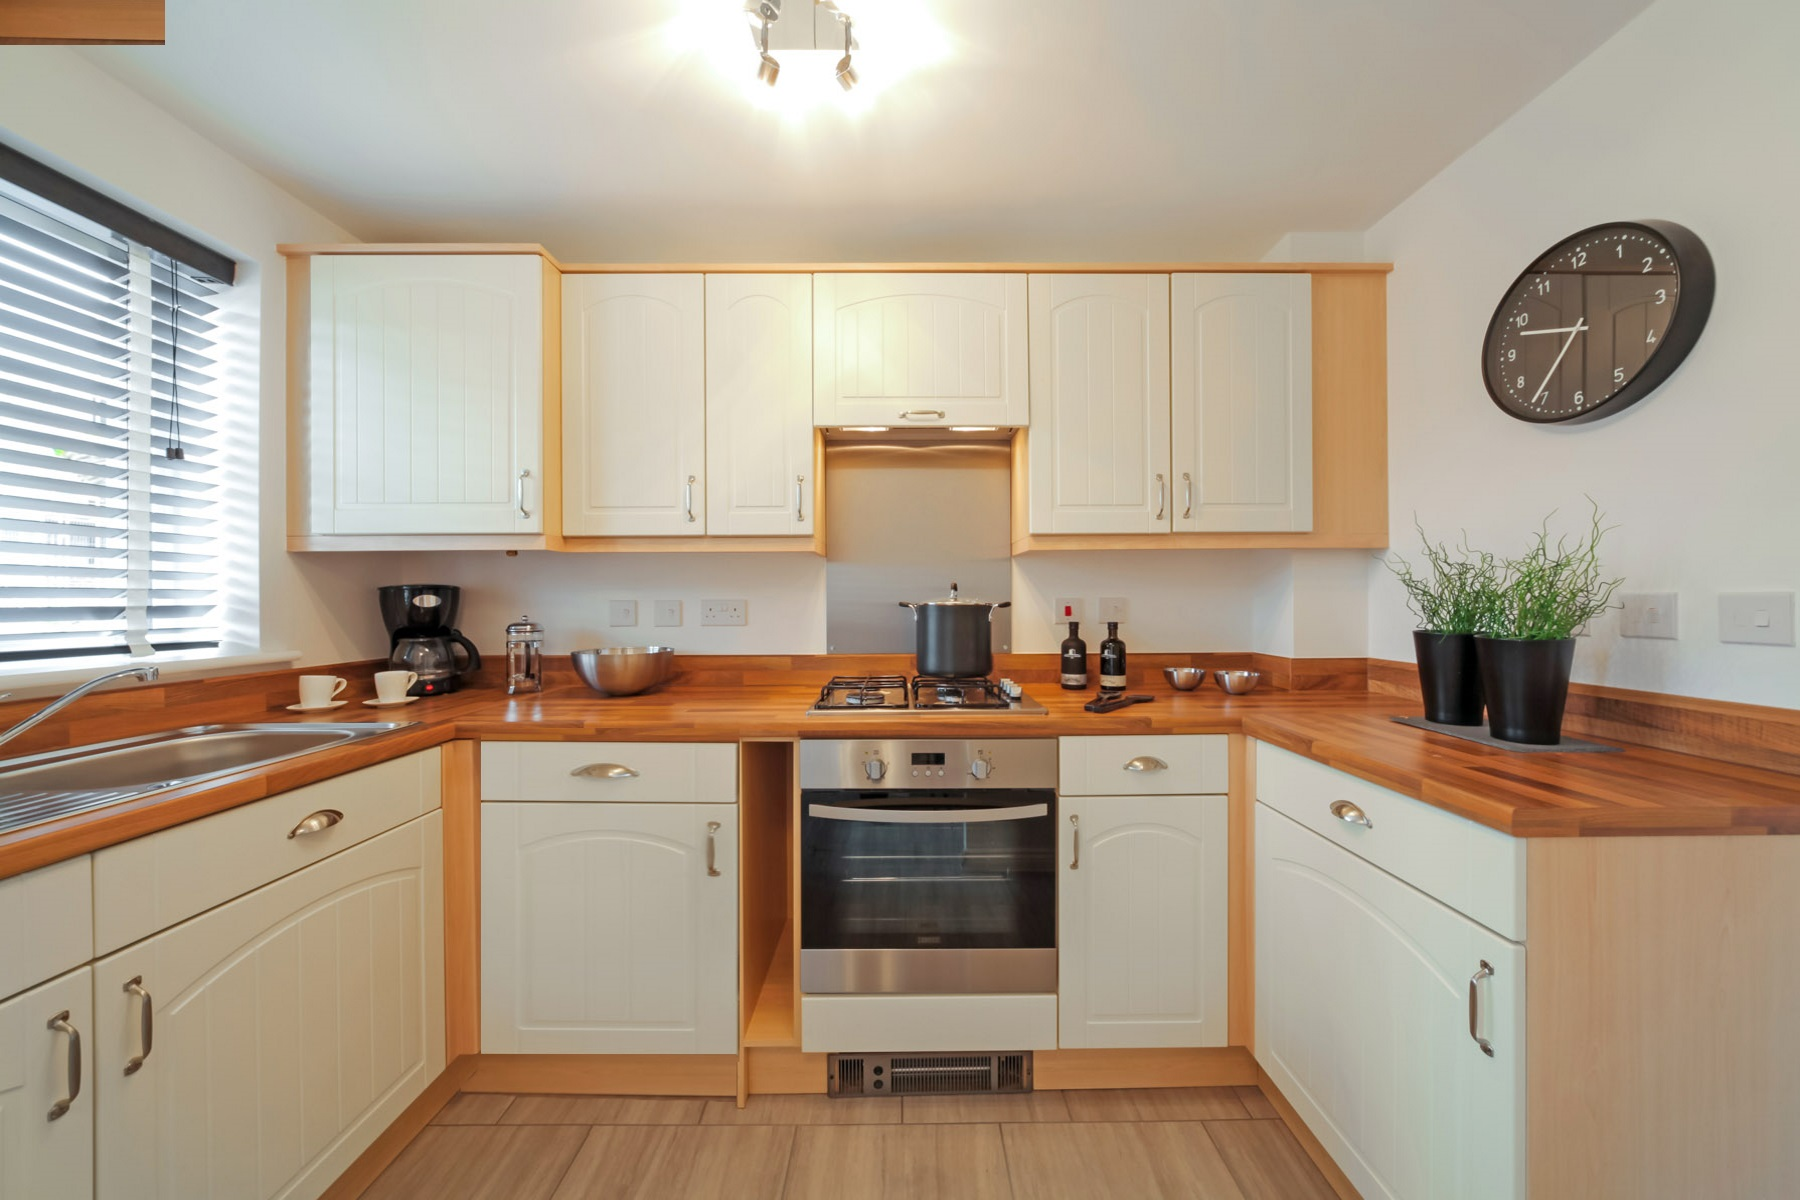 TW Exeter - Cranbrook - Beckford example kitchen